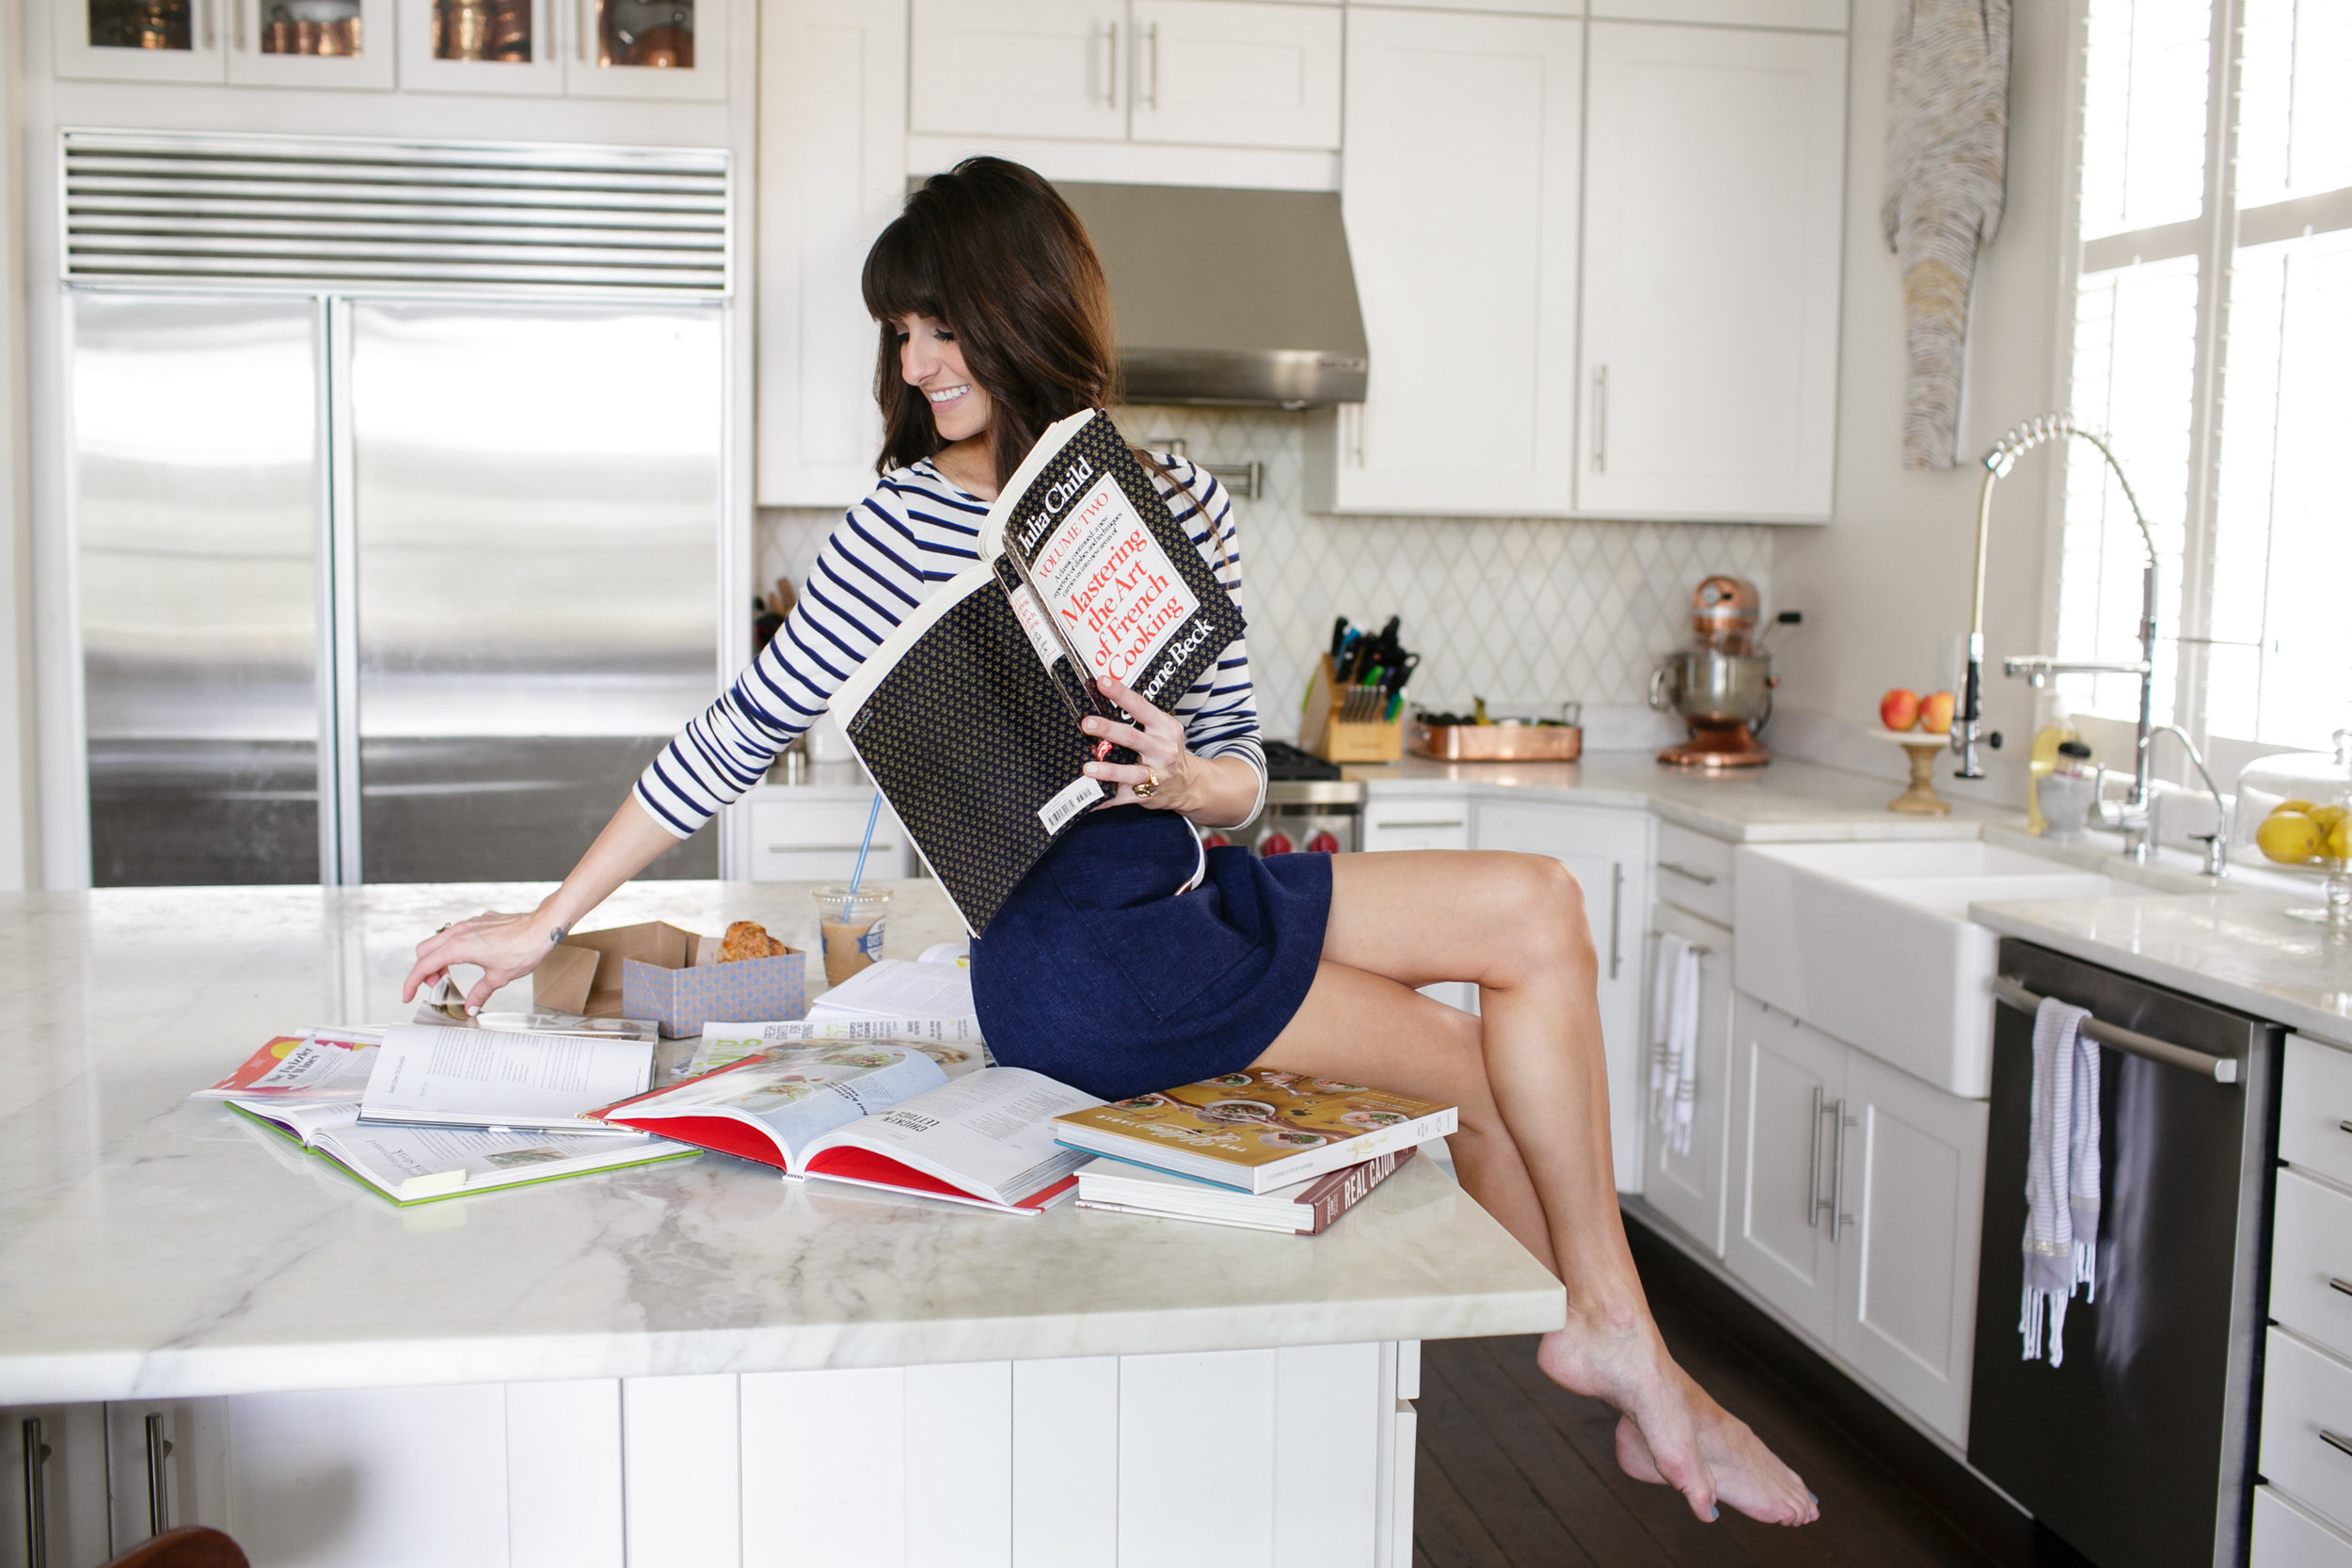 1. - social media sure makes cooking seem glamorous and easy.